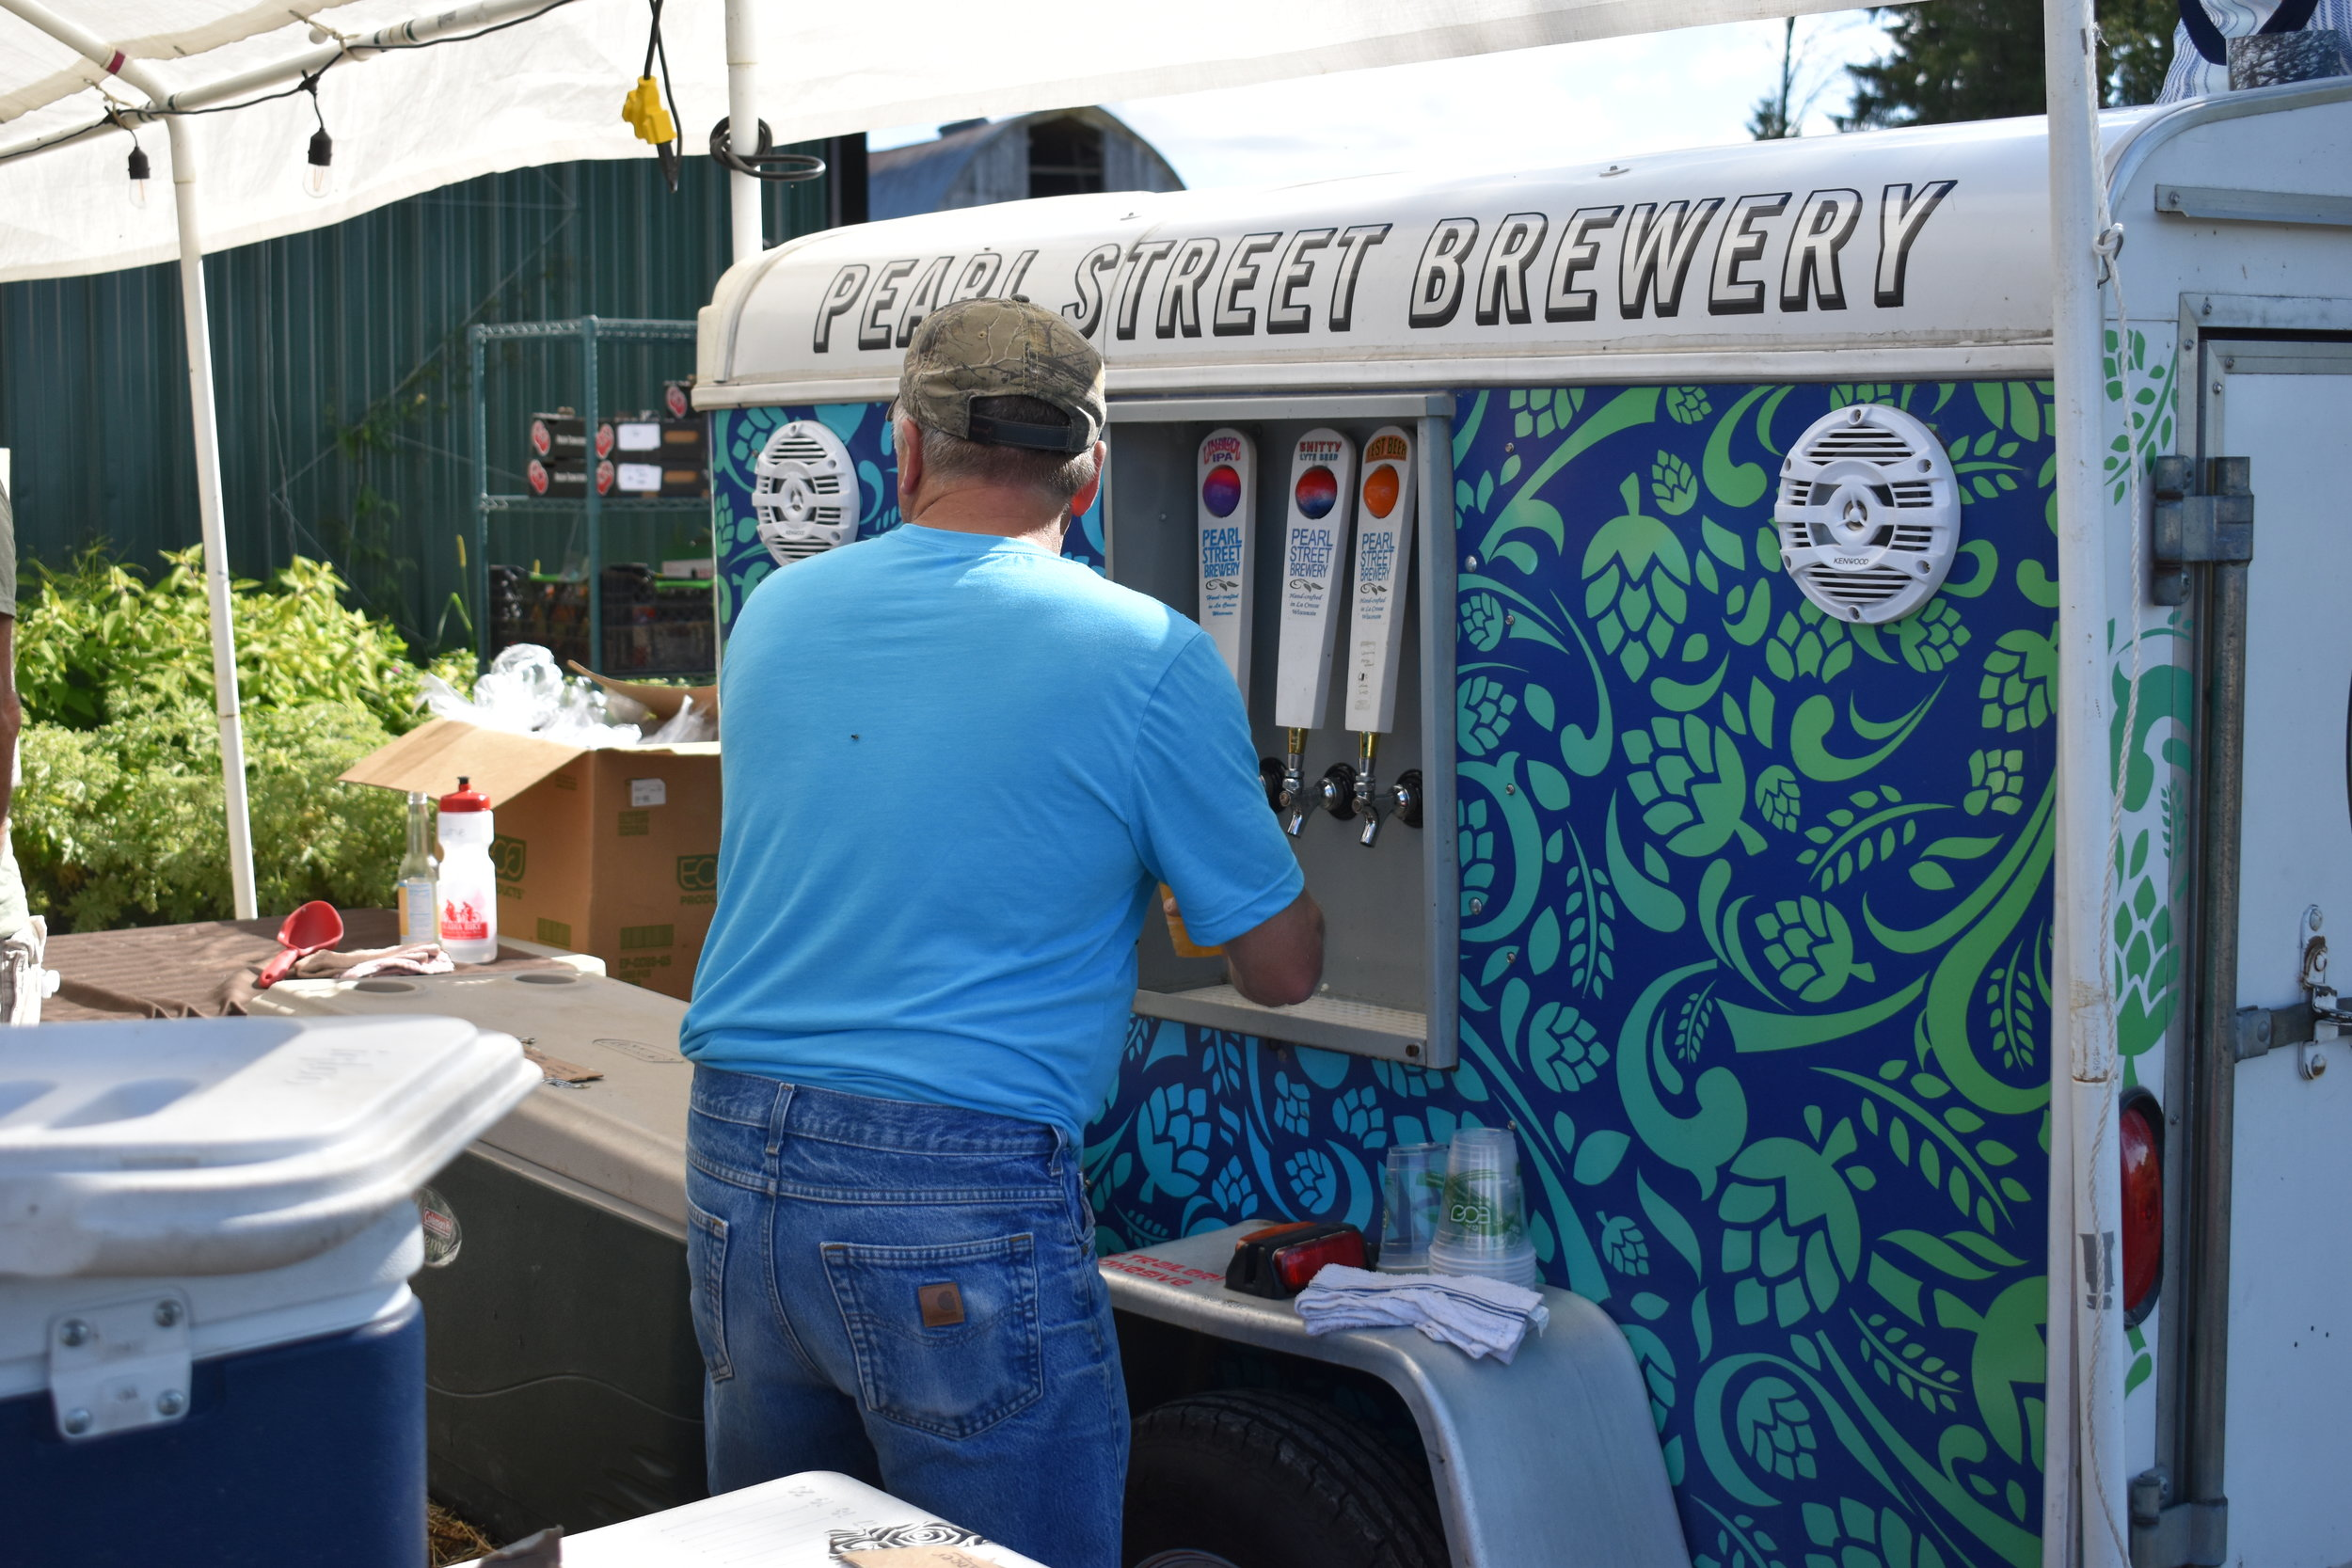 Serving up beer from Pearl Street Brewery